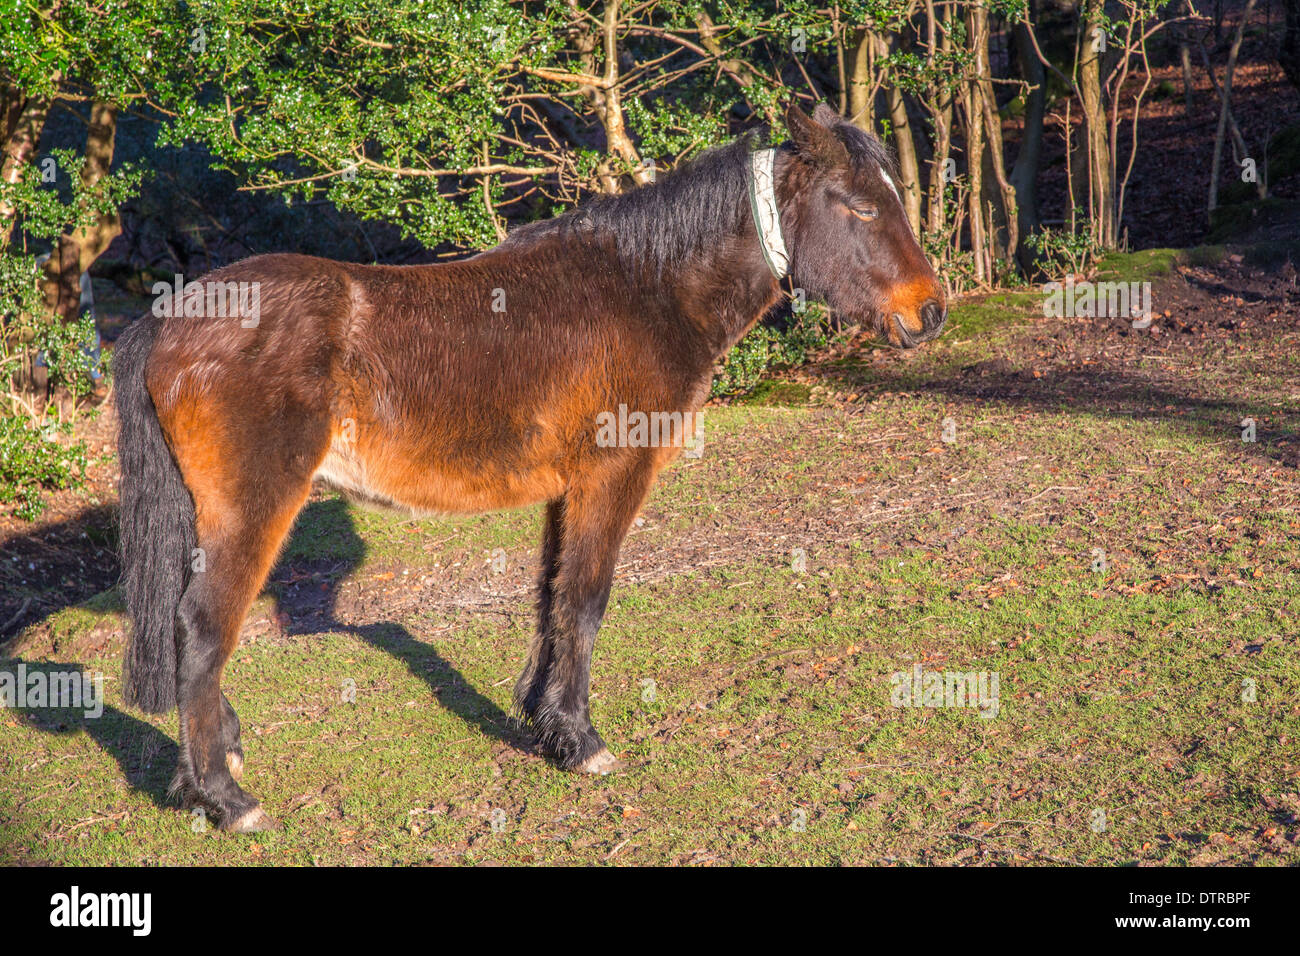 Pony in the New Forest, Hampshire - Stock Image